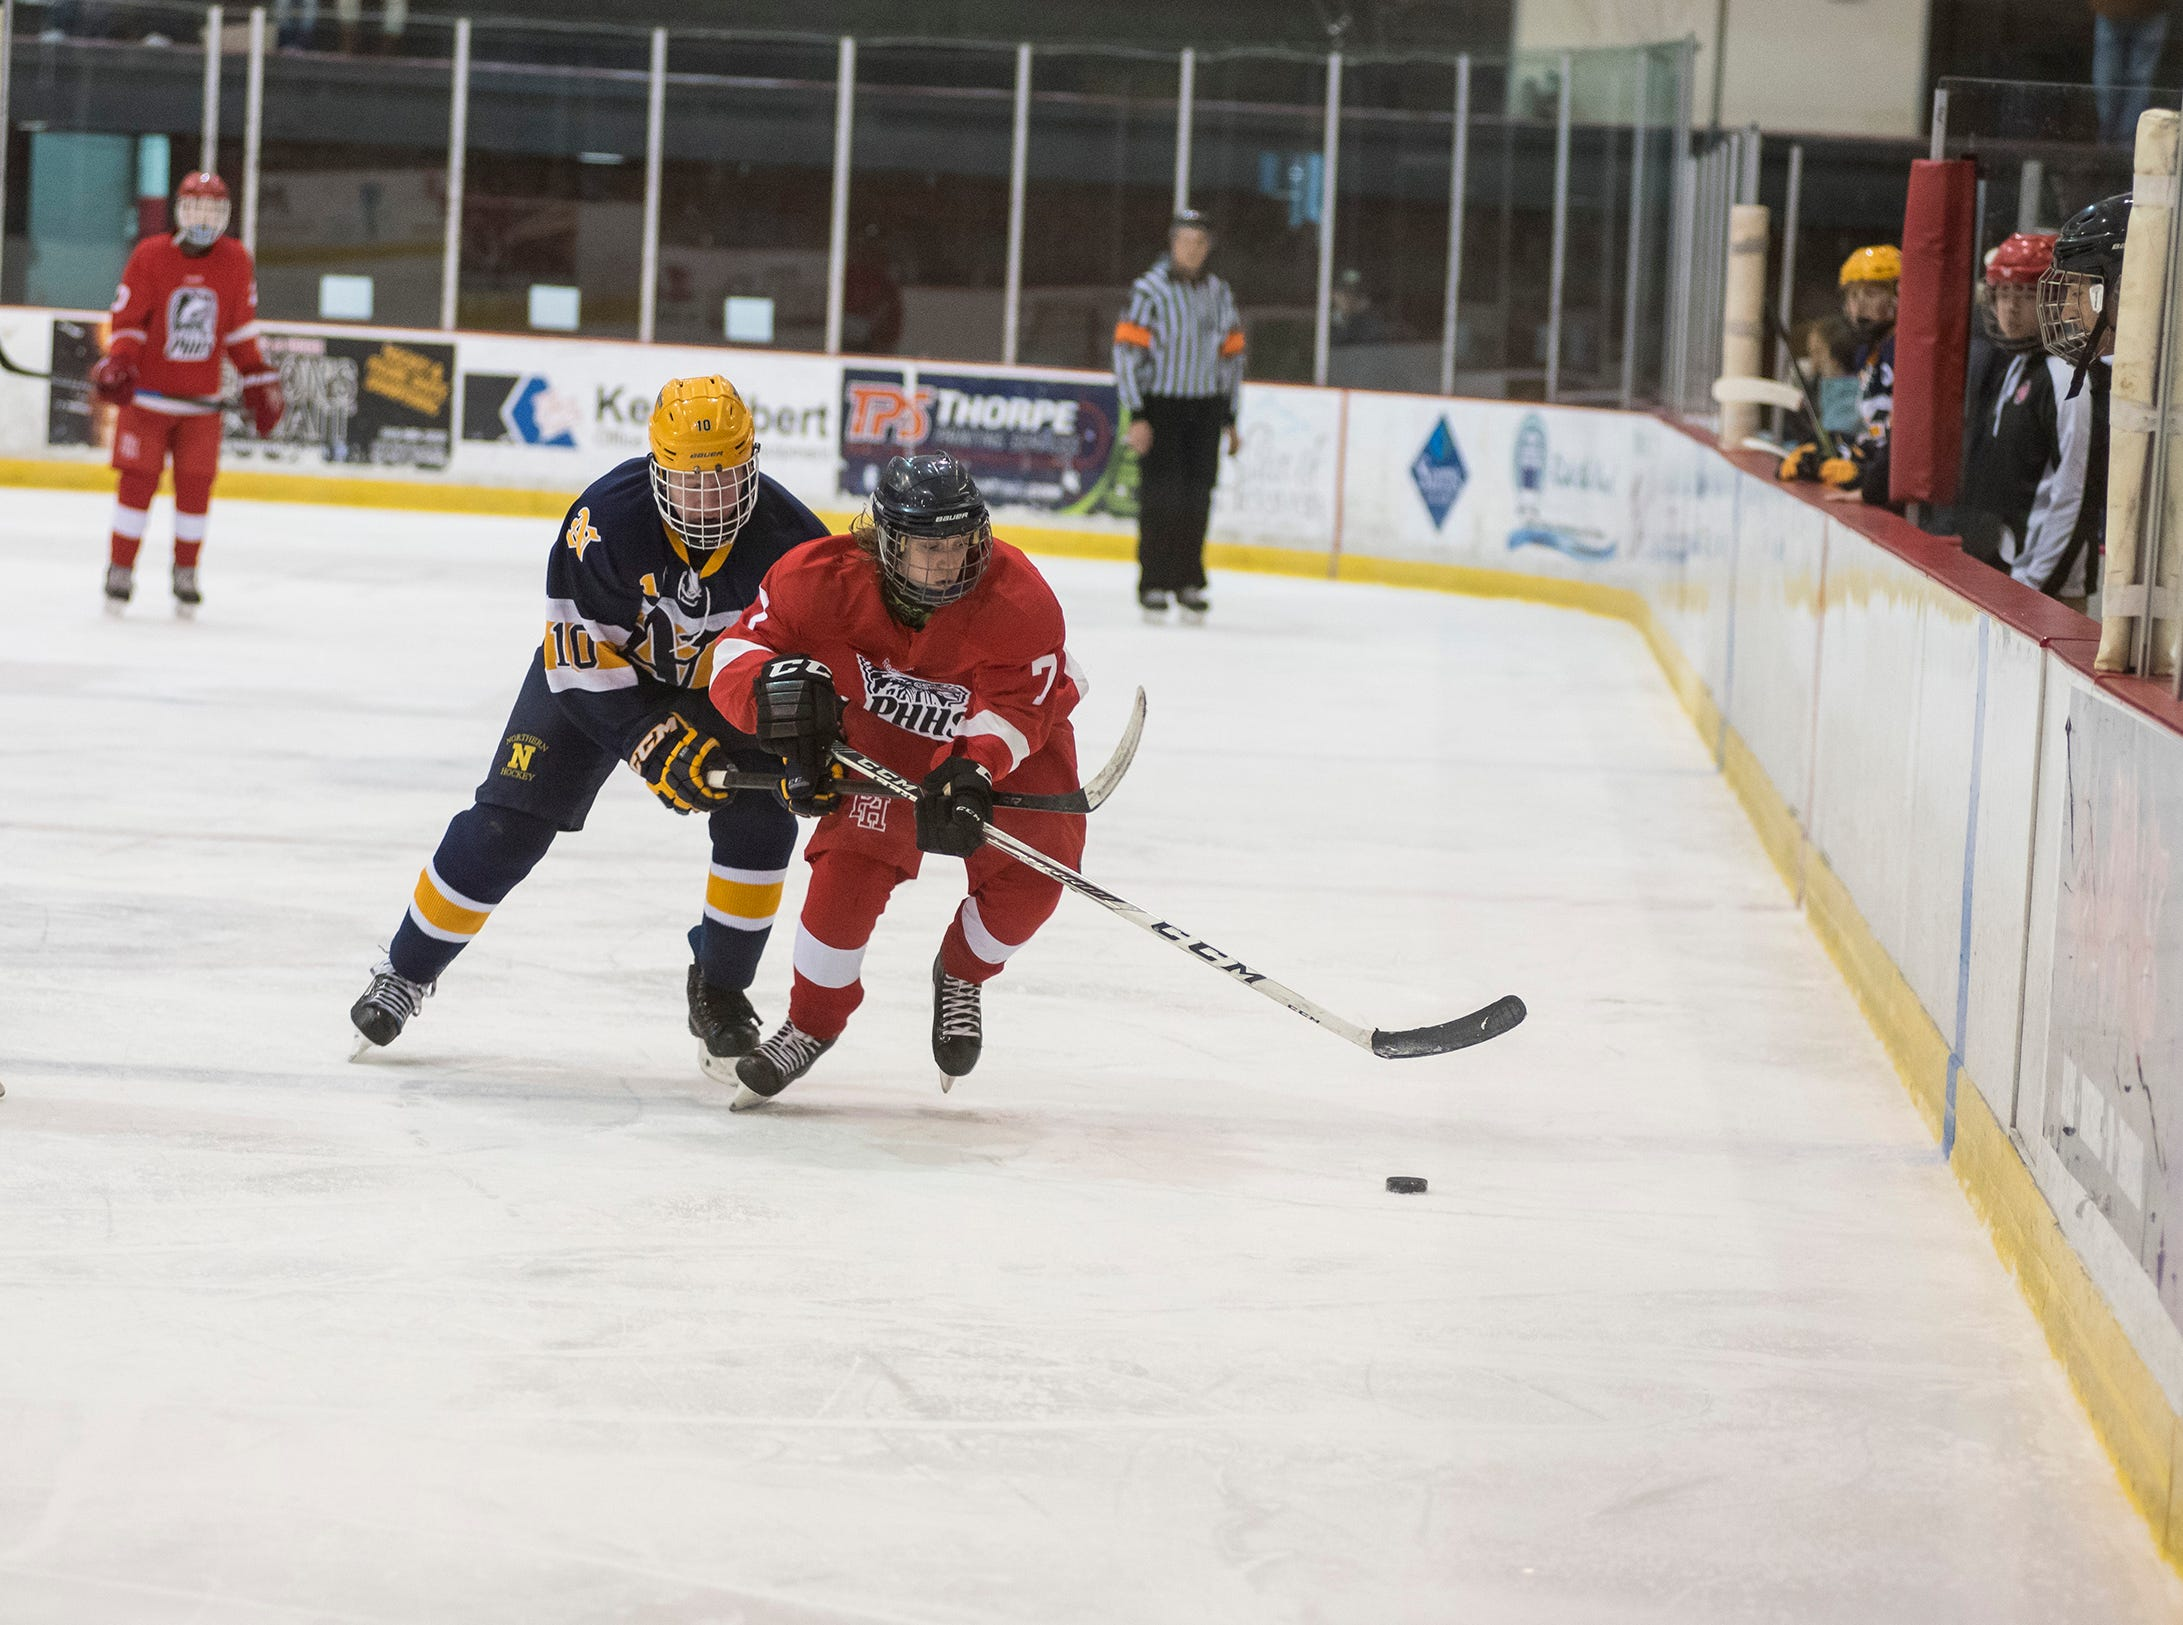 Port Huron High School forward Matthew Fleming (7) and Port Huron Northern High School forward Brendan Dickinson race to the puck during the Larry Manz Holiday Hockey Tournament Friday, Nov. 23, 2018 at McMorran Arena.